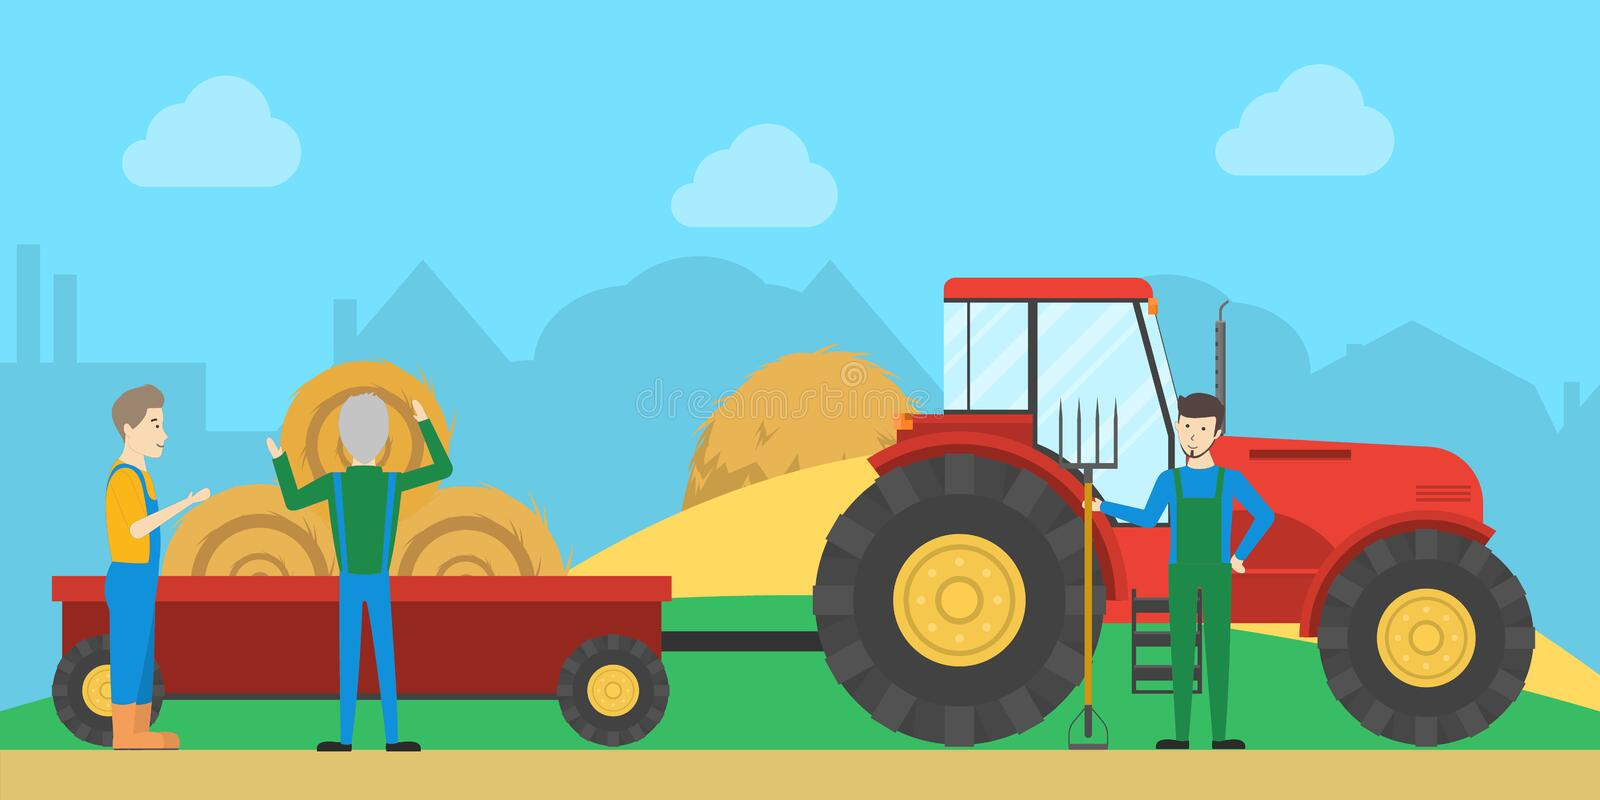 Tractor with haystack. People work on farm with machines stock illustration